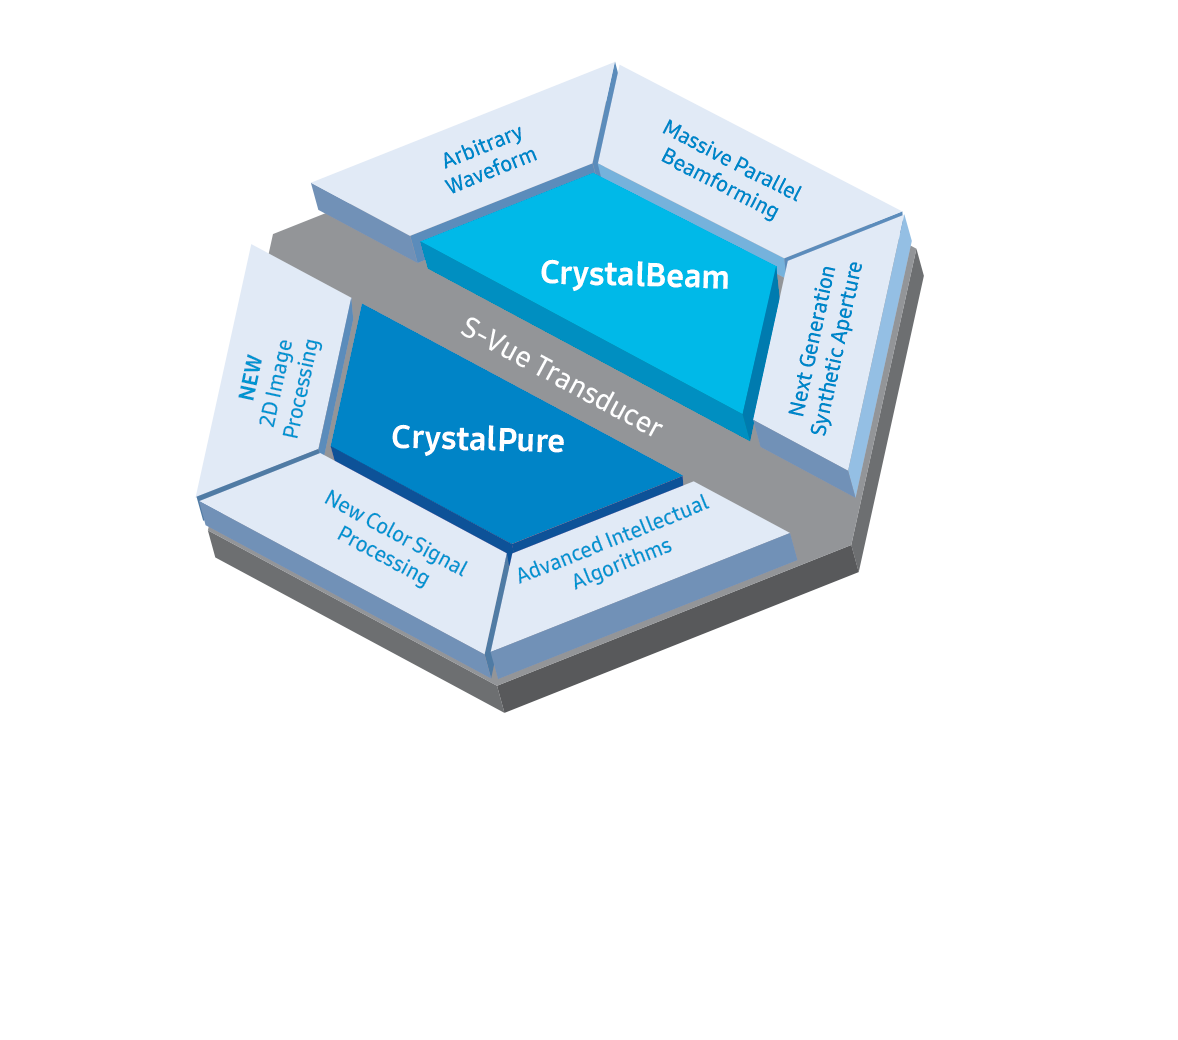 Crystal Architecture